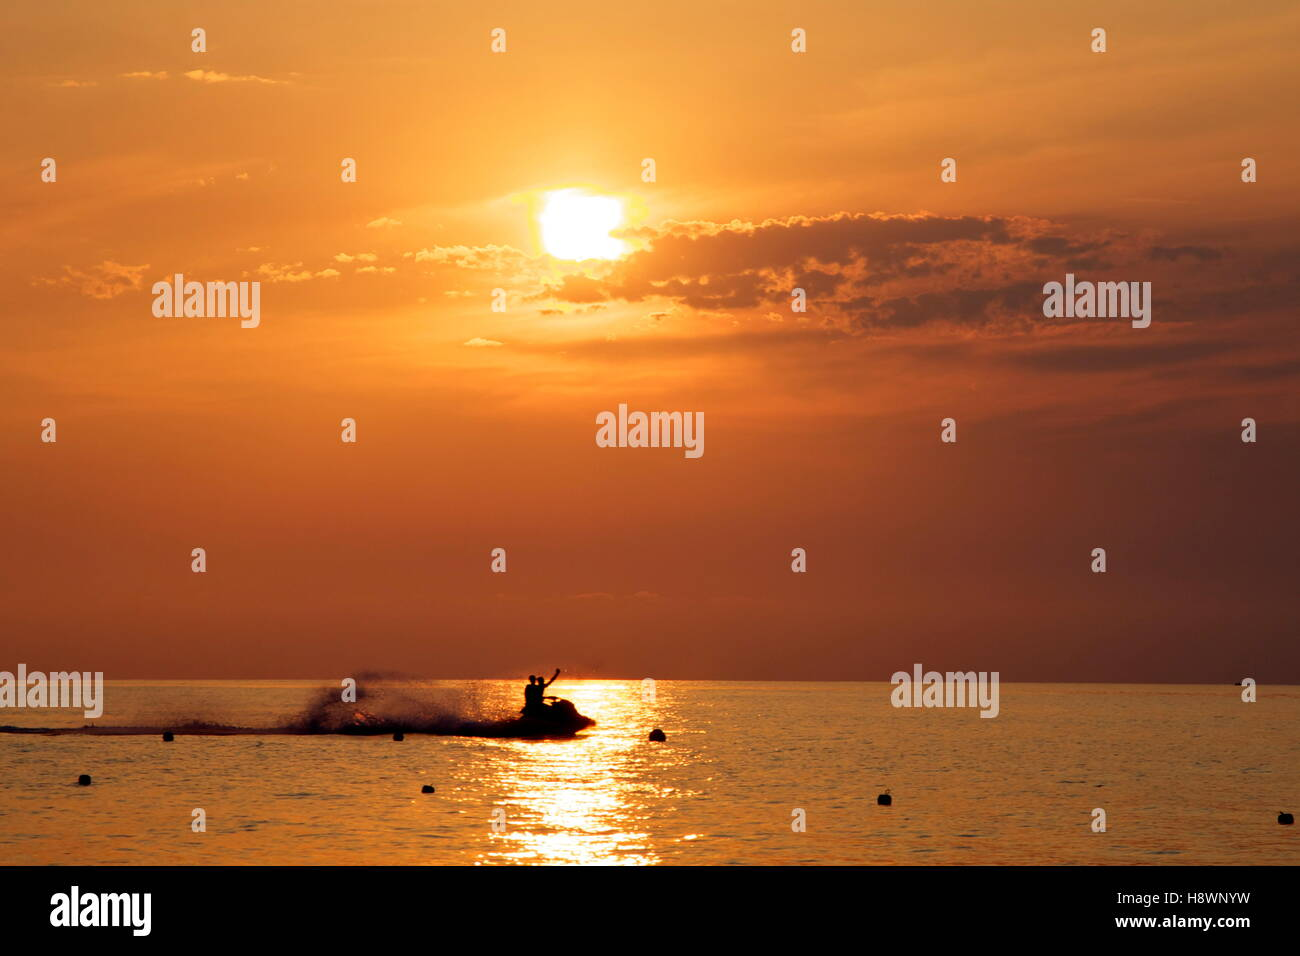 enjoying a watercraft during sunset on the coast of Tropea Calabria Italy - Stock Image